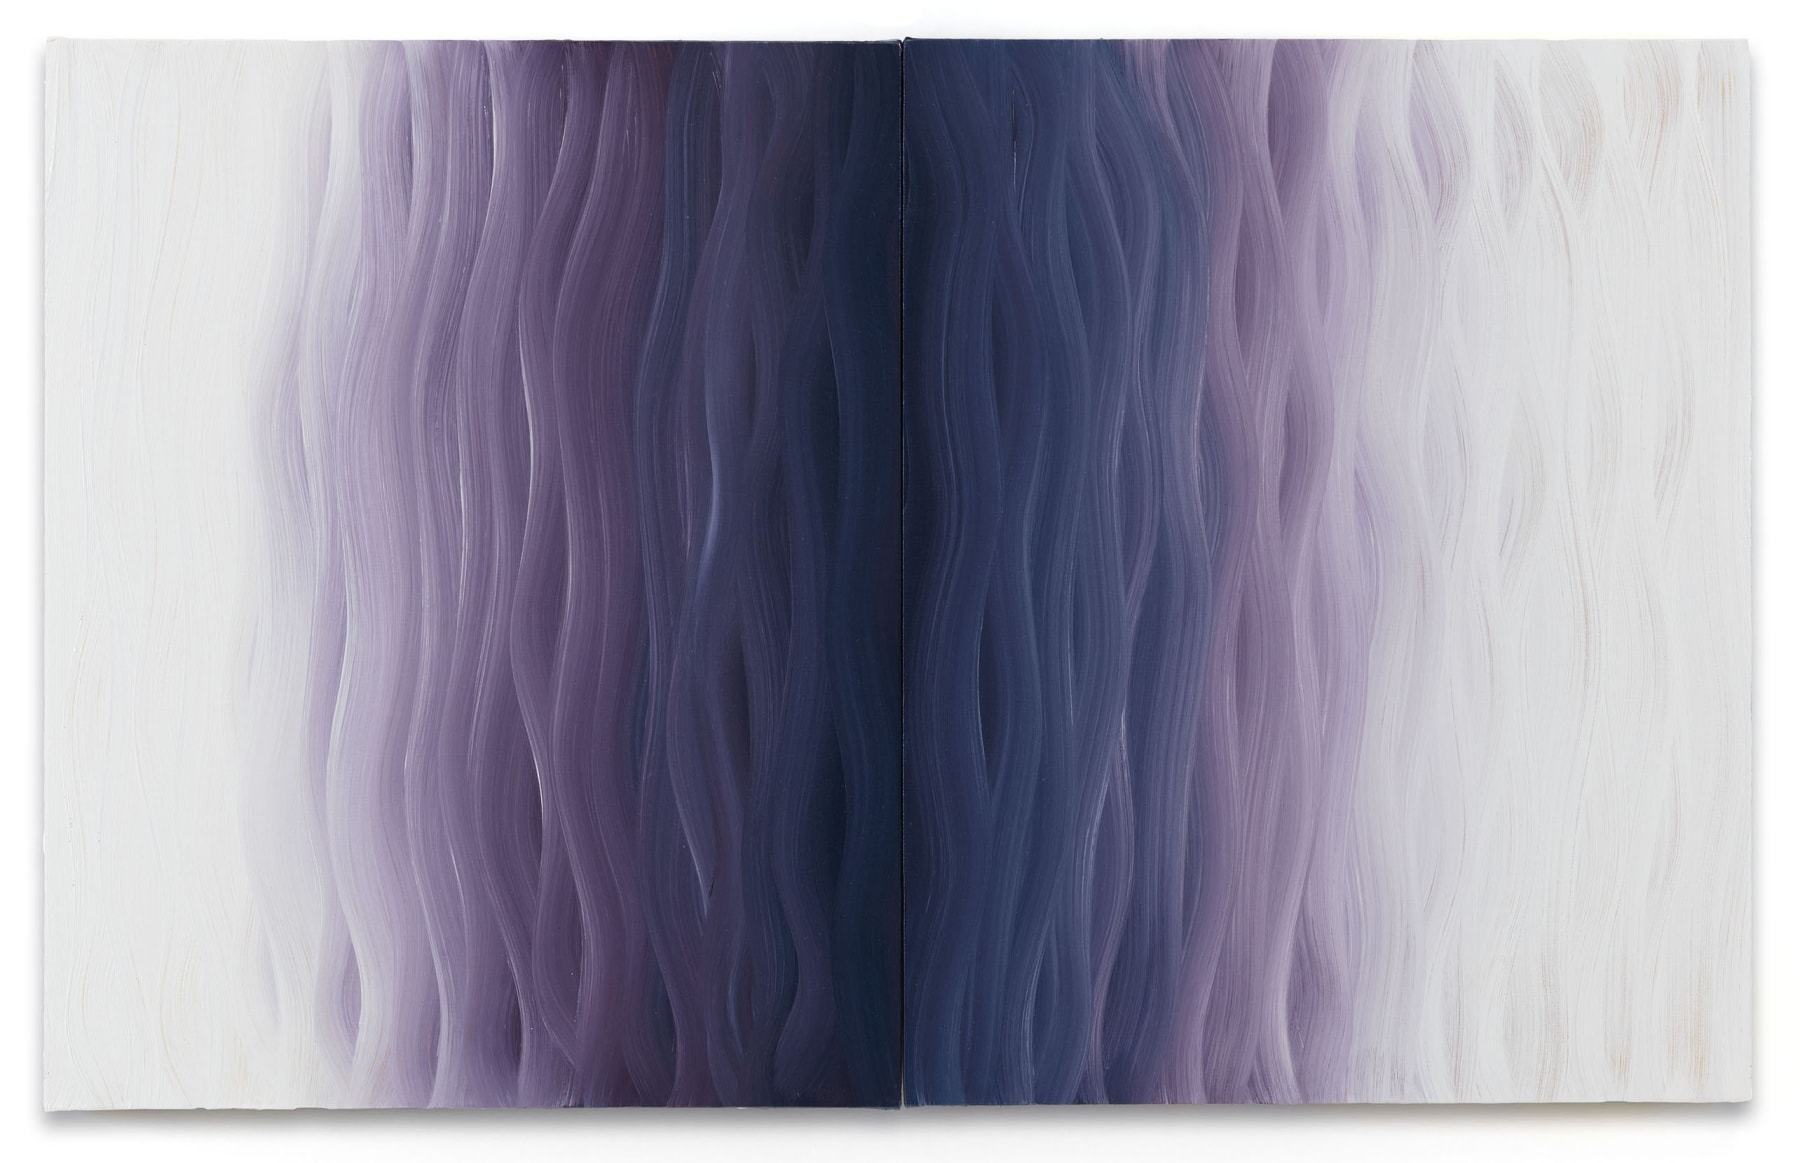 OLGA SOBAKINA CHOOSES: KARIN DAVIE, SIDE EFFECTS NO. 3, 2018 I like this work because you can see the brush strokes and the fact that it is diptych adds to the depth in the center. It reminds me of waves on an ocean transitioning from beach to the deep abyss in the center. The transition from the deep blue in the middle to the purple color is super mesmerizing. The white on the sides makes these waves feel like they can go on forever. Whenever the work is hanging in the gallery you can see hints of yellow on the sides of the canvas. It's a nice bright pop of color that is not very apparent from a straight-on image. Karin Davie Side Effects no. 3, 2018 diptych oil on canvas over panel, each panel 20 x 16 inches 20 x 32 in (50.8 x 81.3 cm) KD 33 $18,000